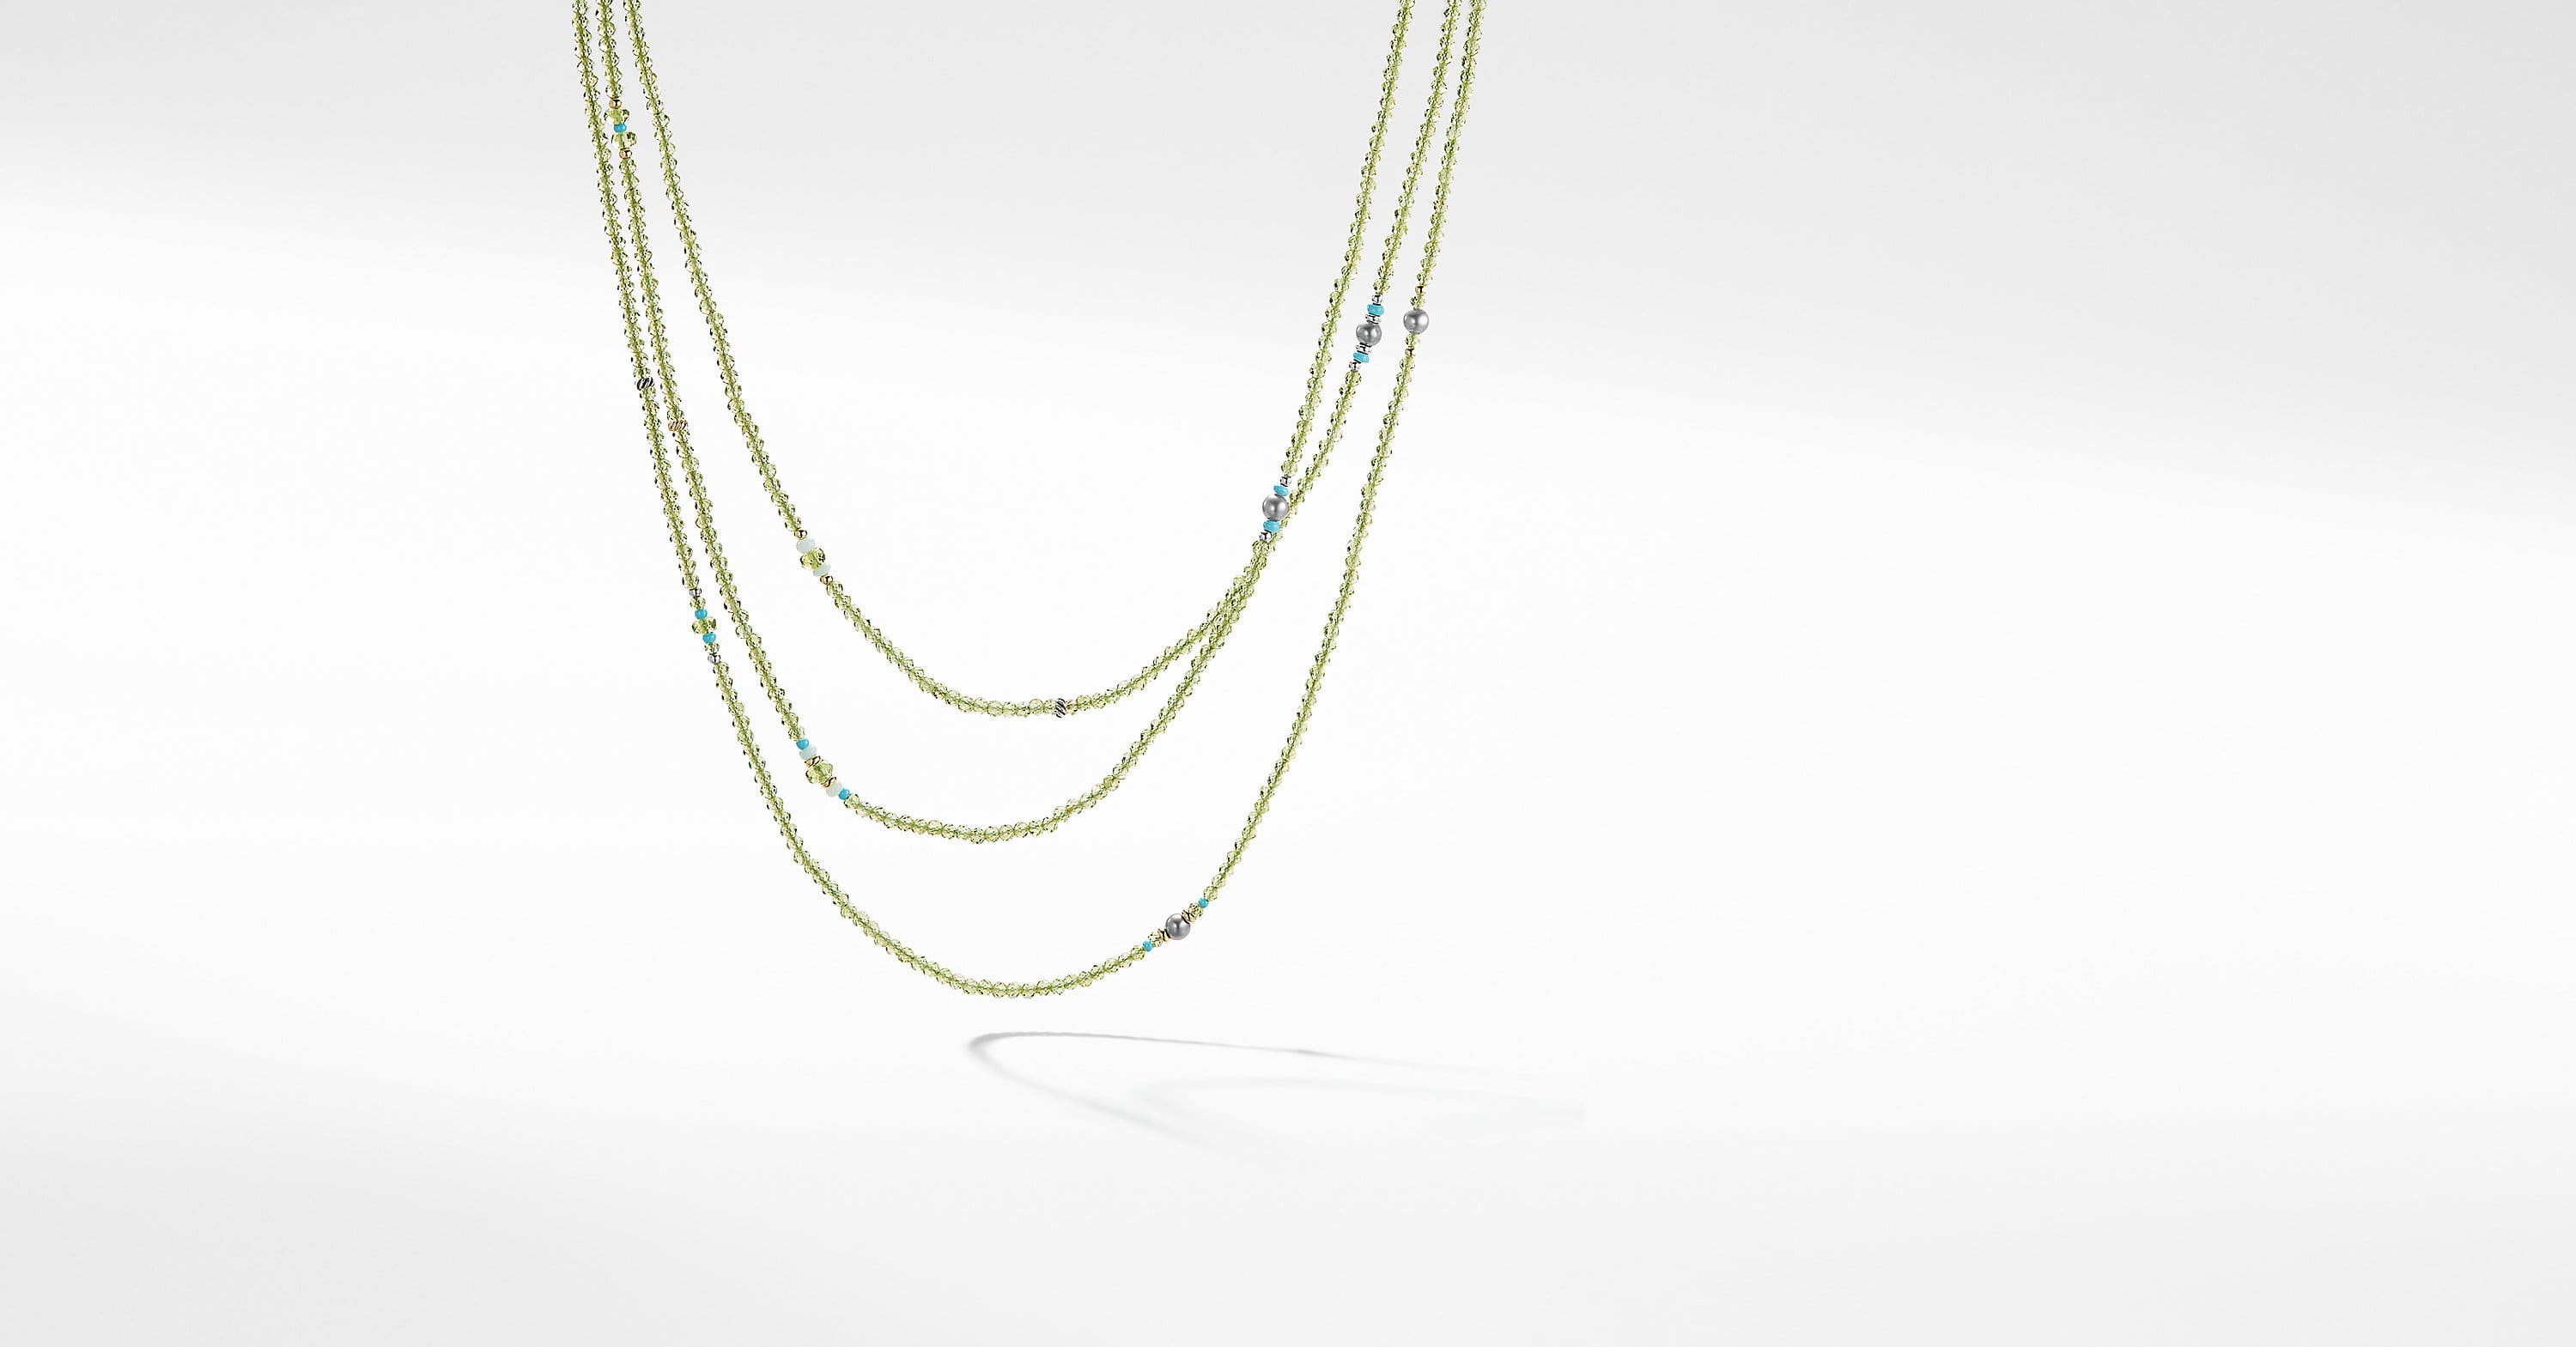 Mustique Beaded Necklace with 18K Gold